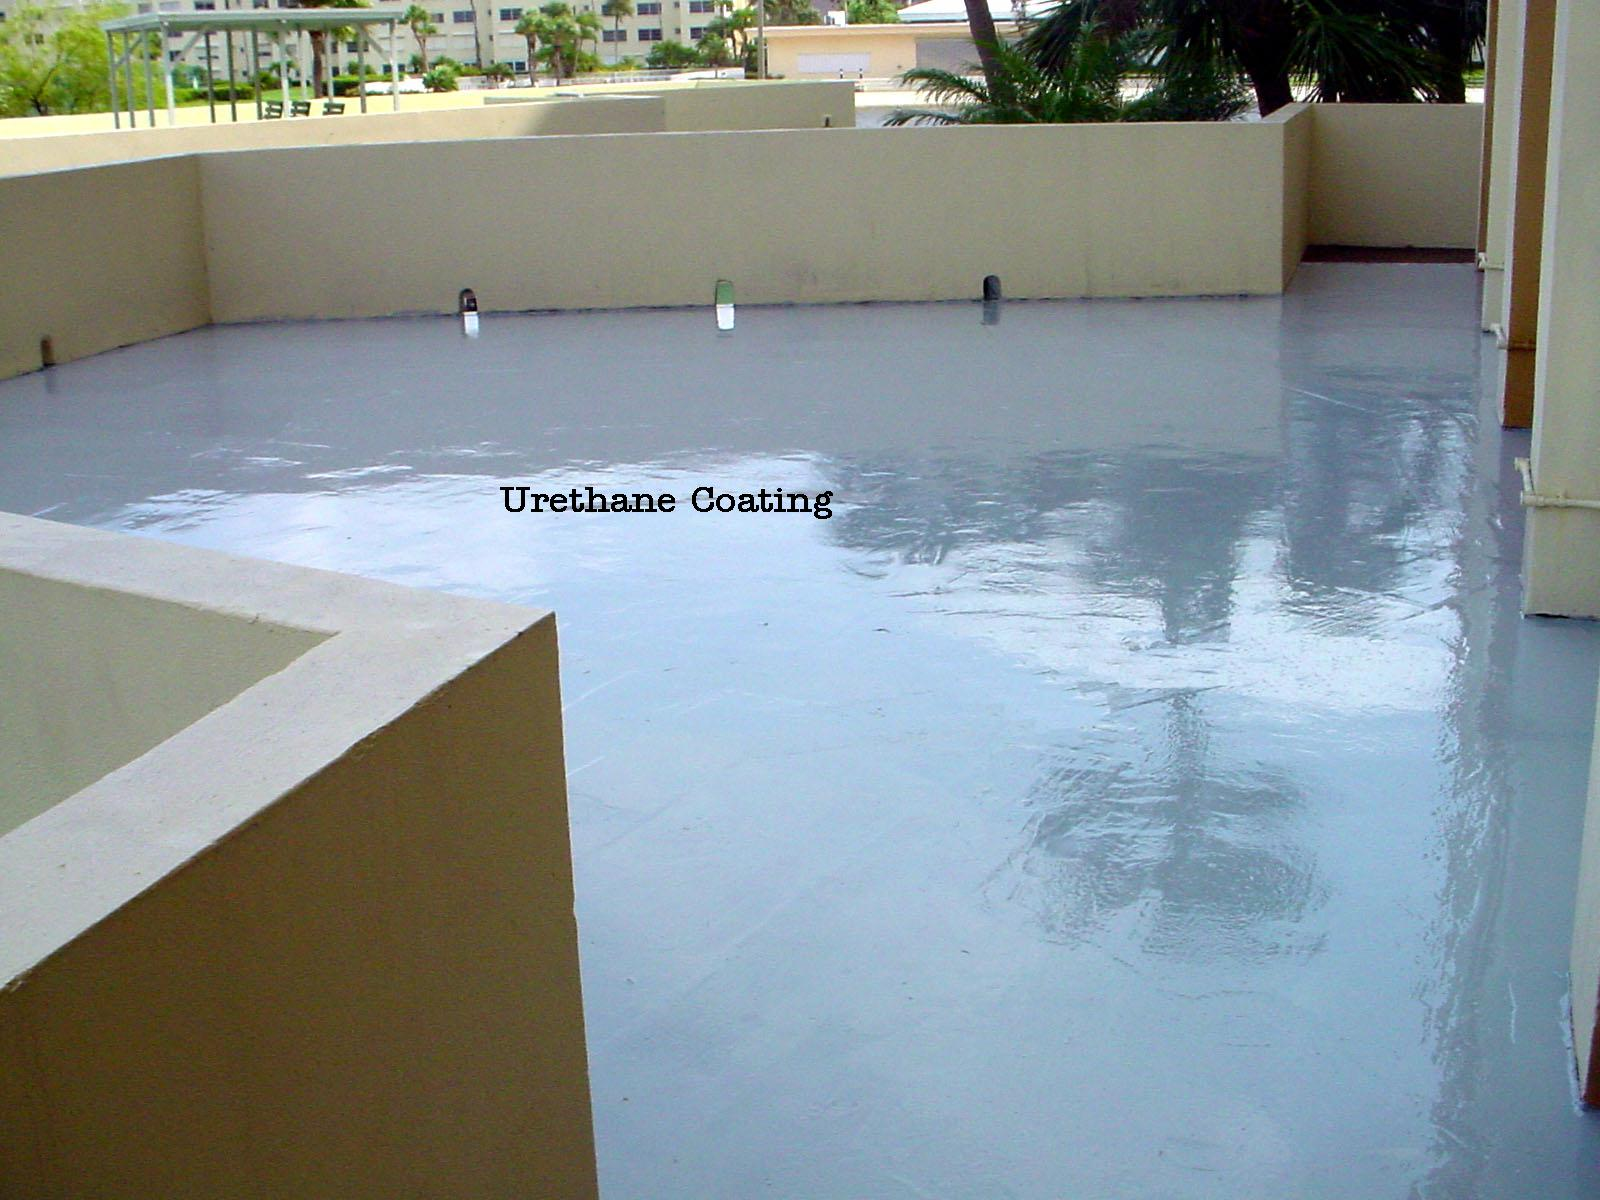 Out door Urethane Coating